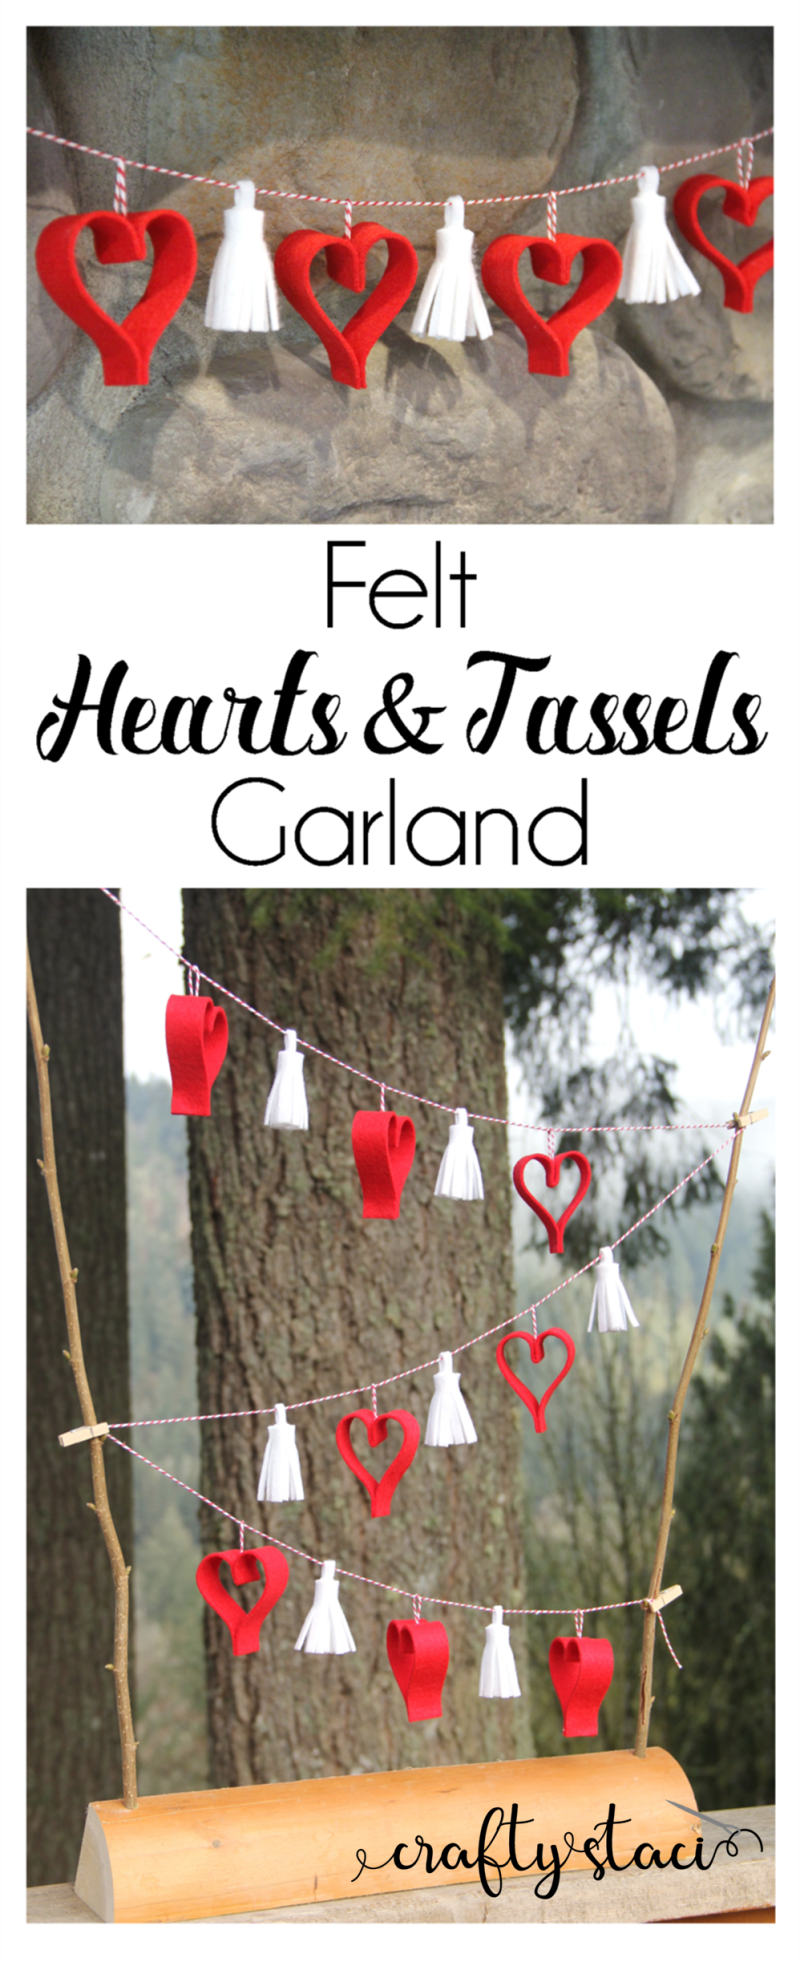 Hearts and Tassels Garland from craftystaci.com #feltcrafts #valentinecrafts #heartcrafts